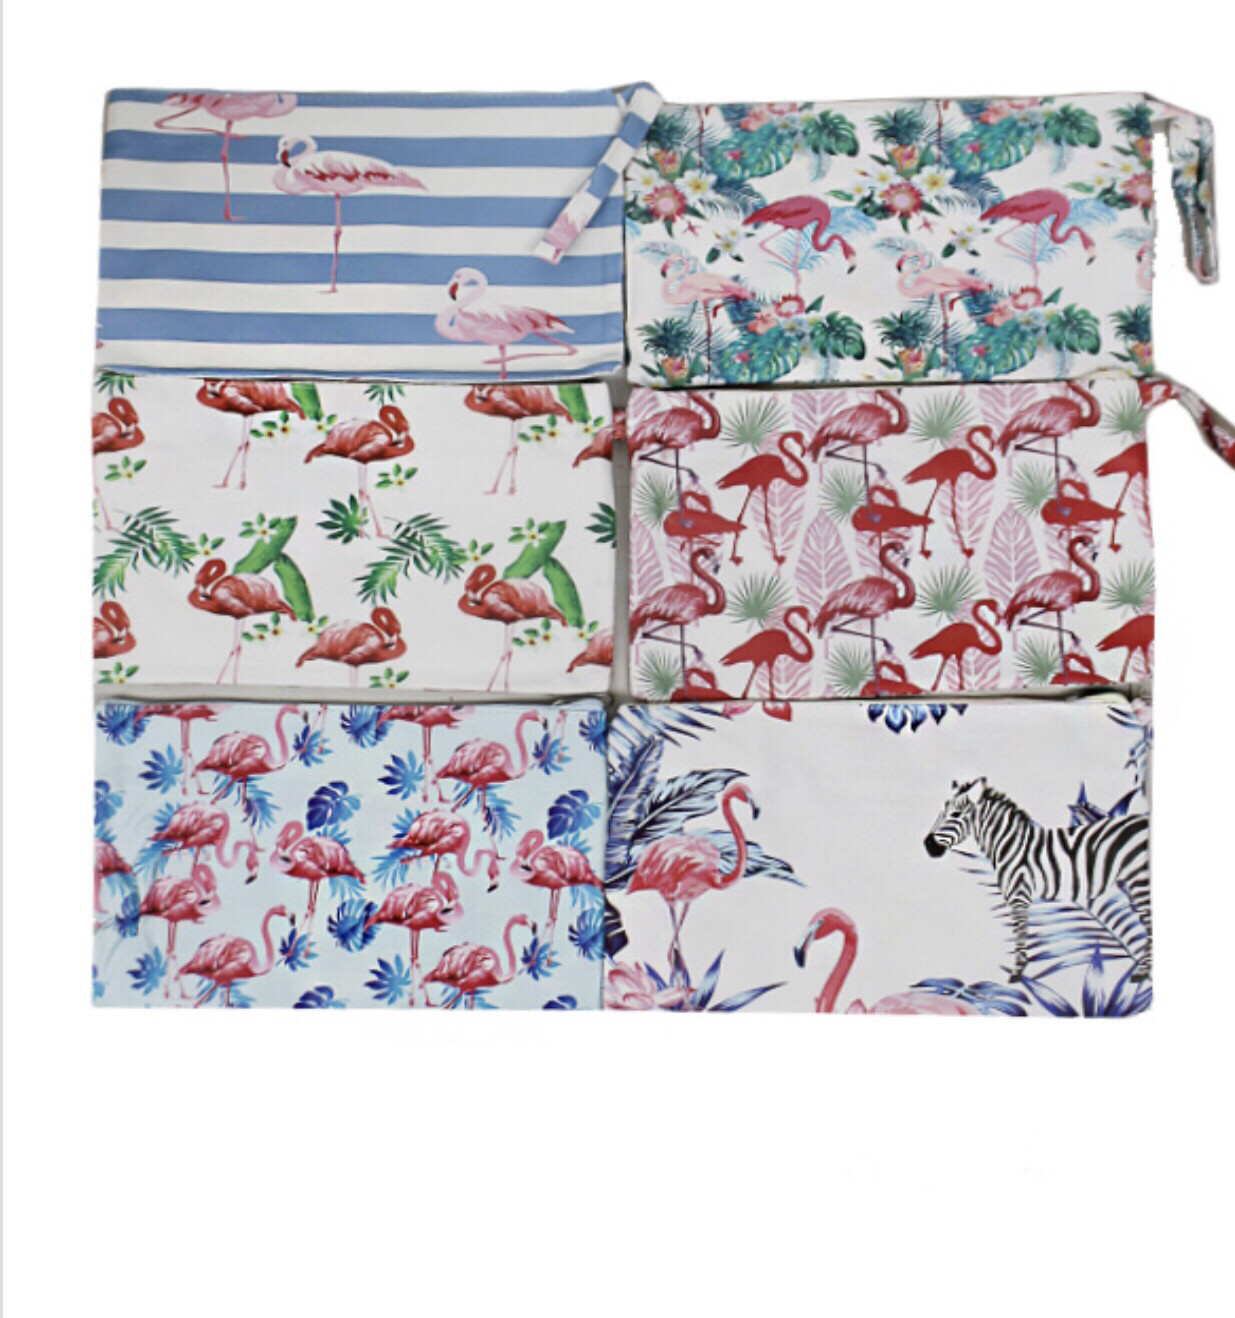 Flamingo Designed Wallets